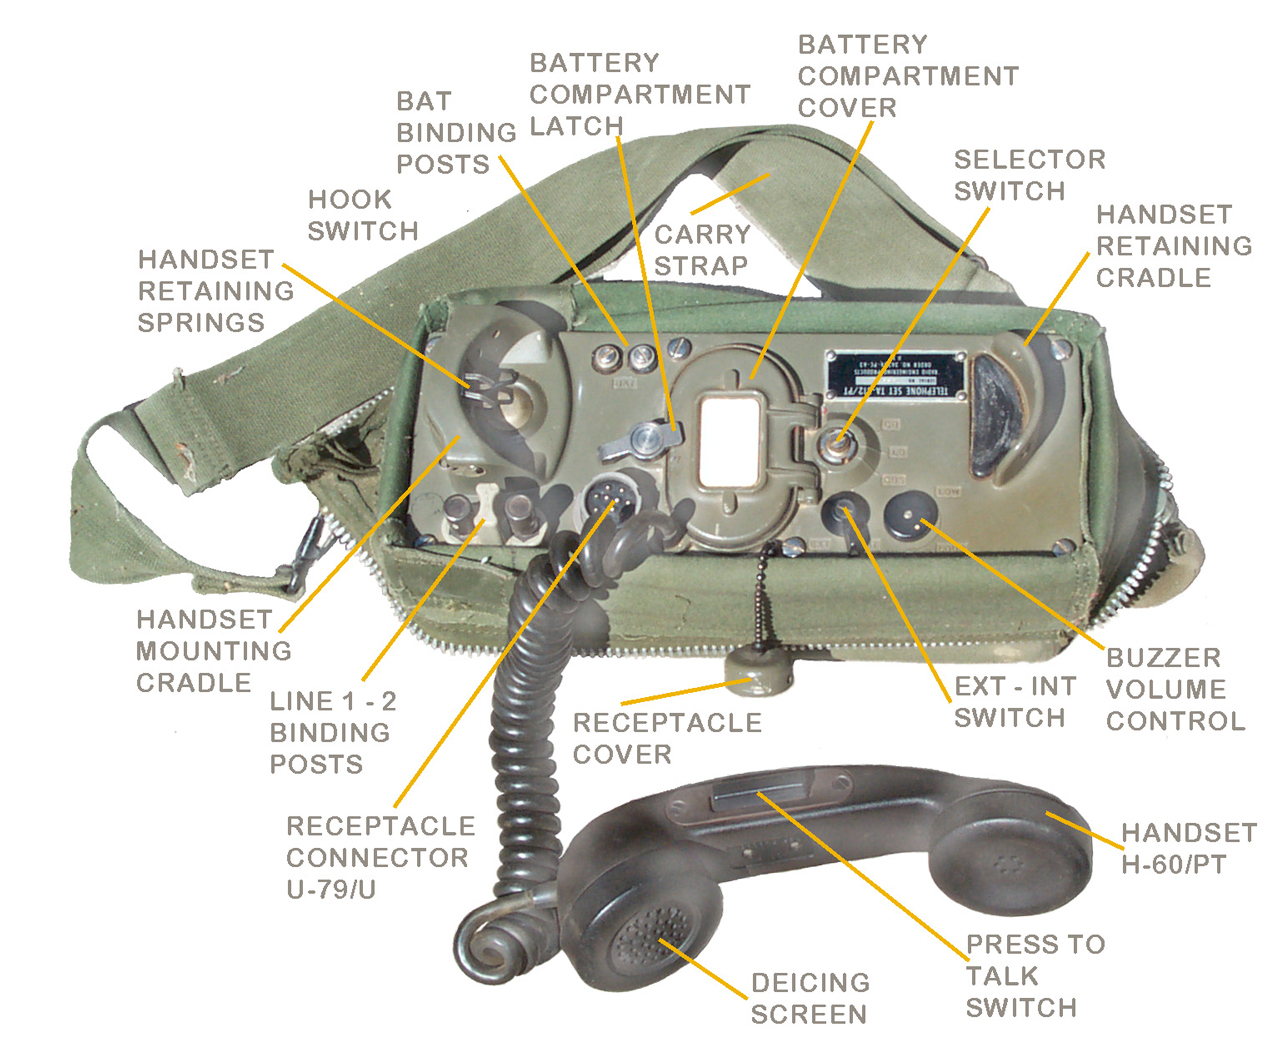 TA-312 with Controls Labeled